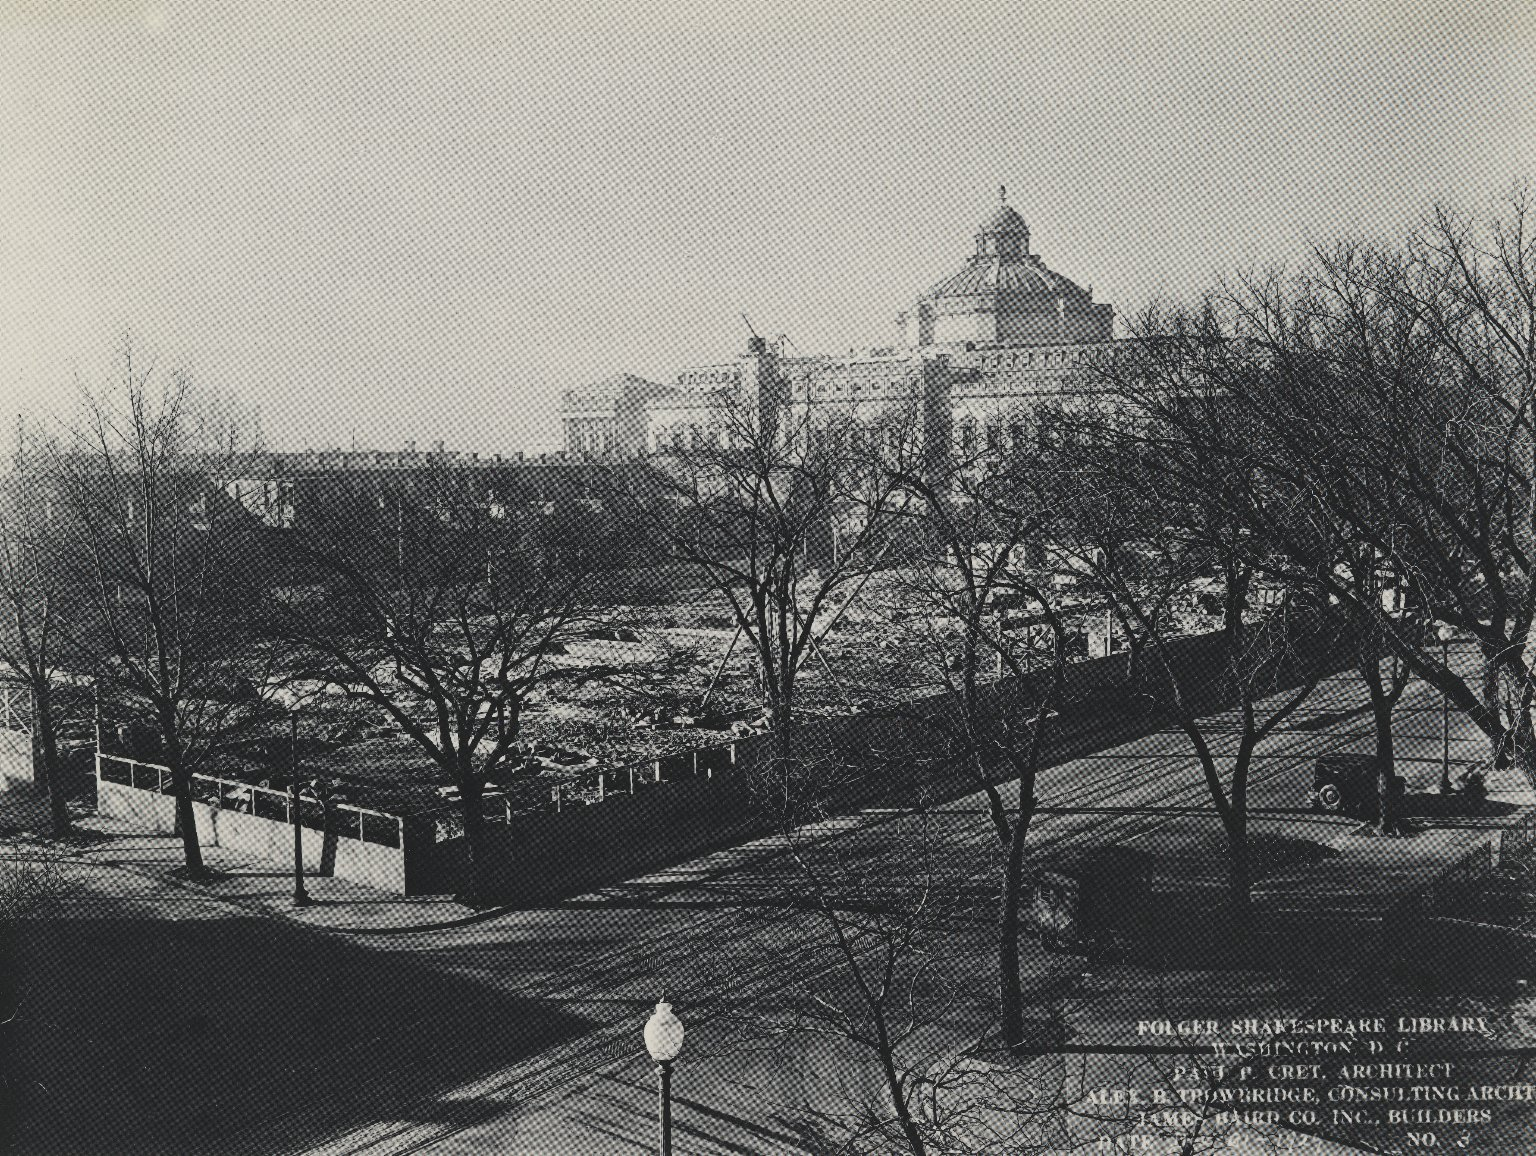 FSL vacant lot with the Library of Congress in background (photo)